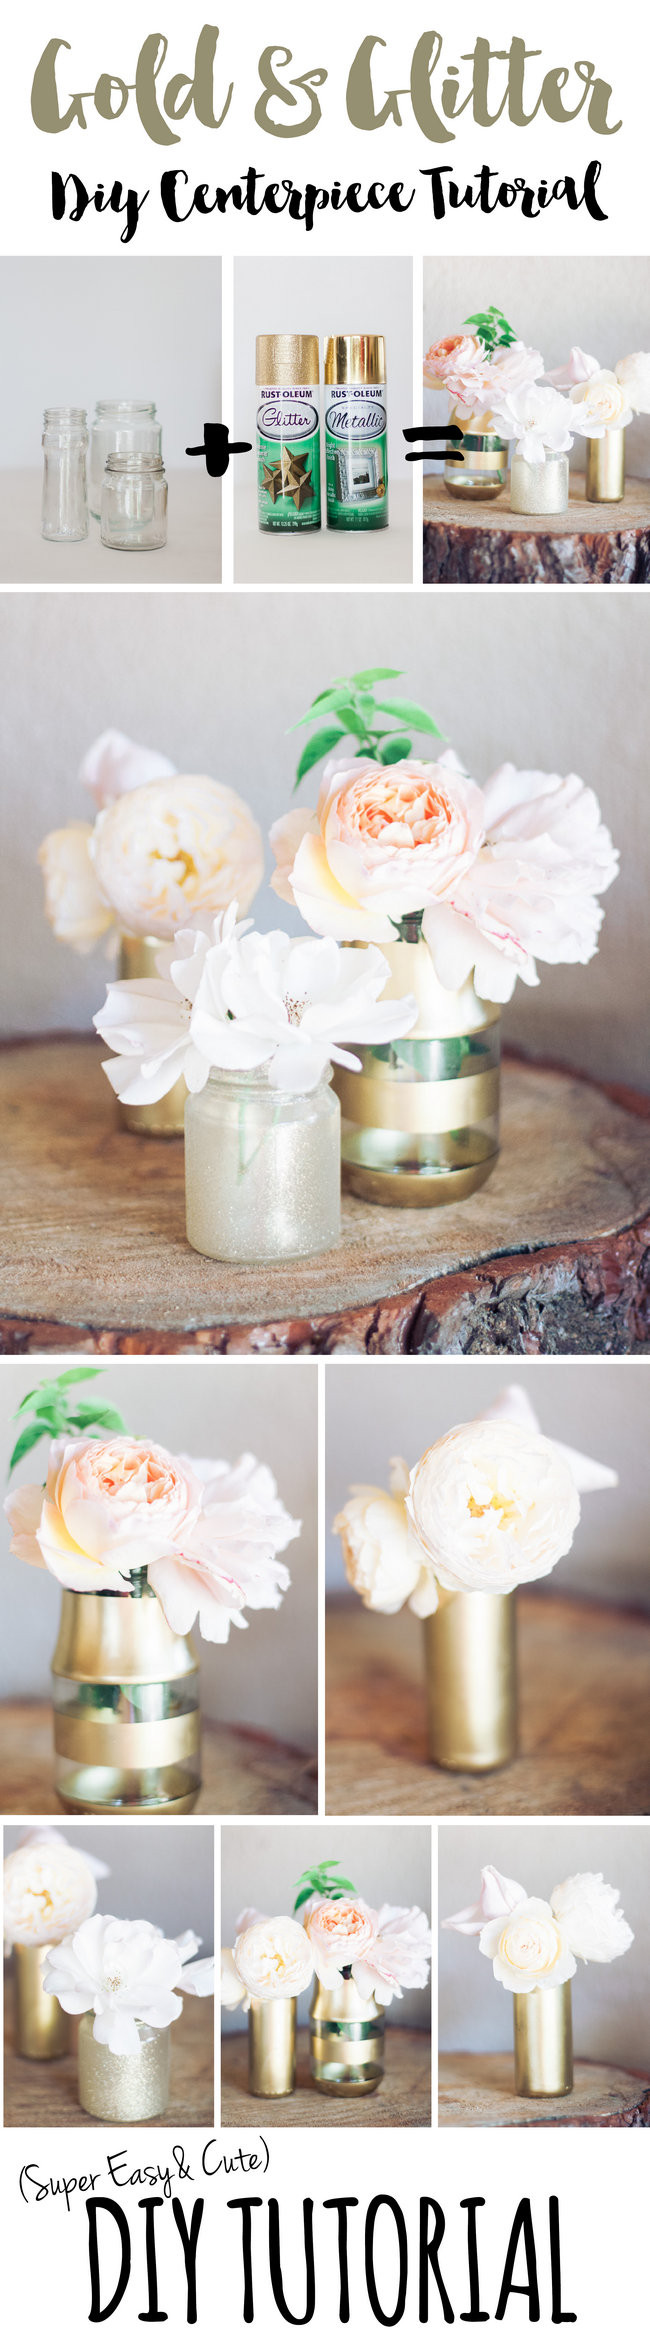 Easy and super stunning DIY Gold Glitter Bottle to Vase Tutorial. Makes stunning wedding centerpieces! http://www.confettidaydreams.com/diy-gold-and-glitter-vases-tutorial/